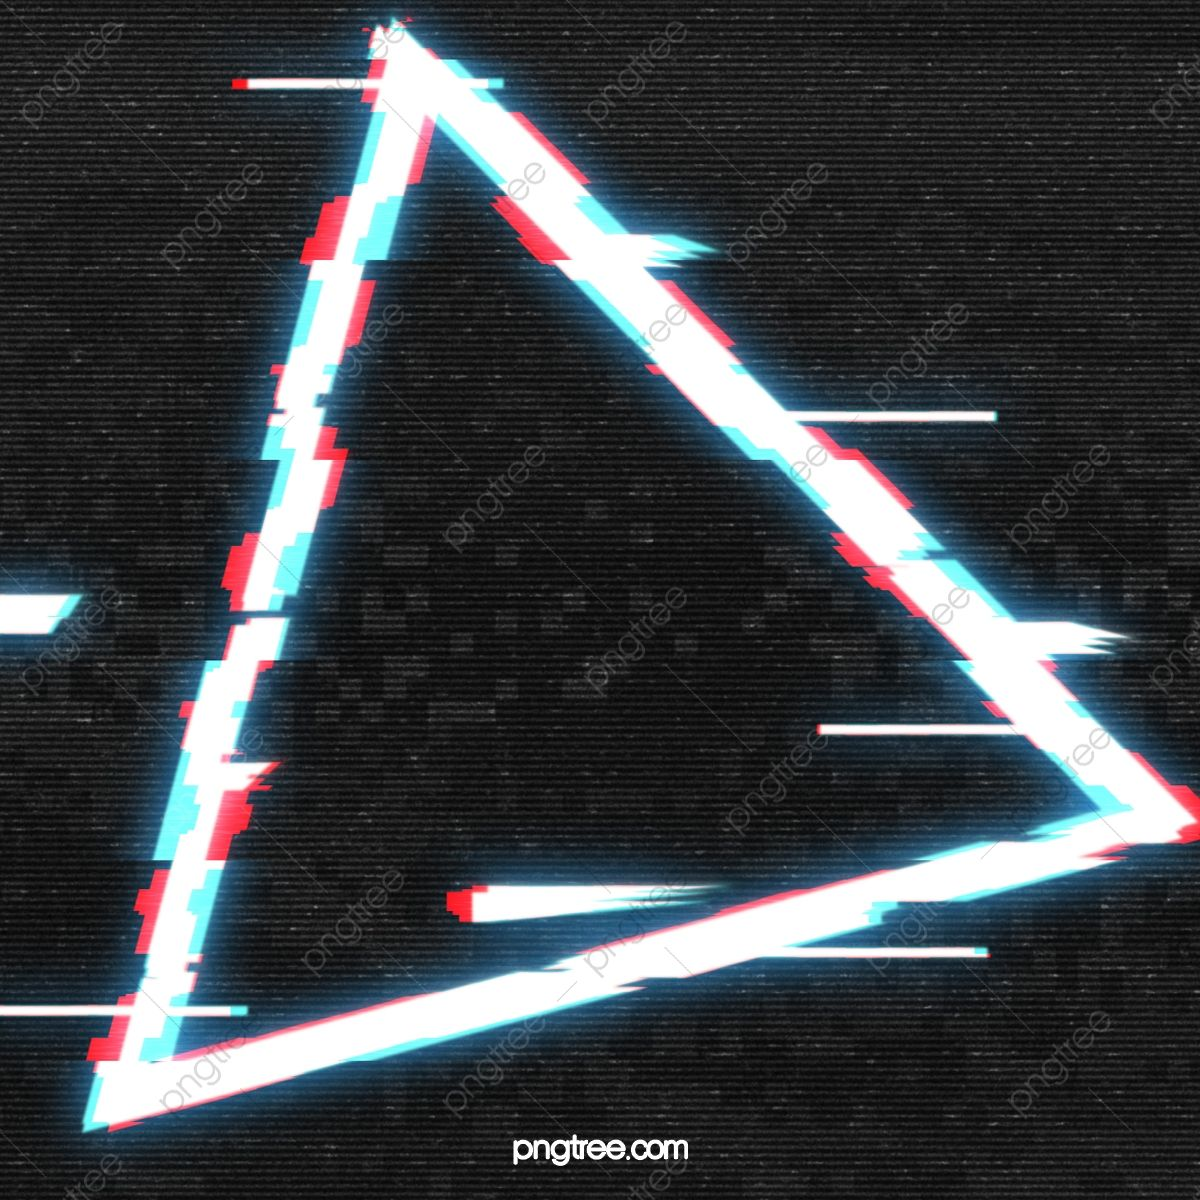 Fault Design Of Modern Fashion Triangular Neon Effect Triangle Element Light Png Transparent Clipart Image And Psd File For Free Download Neon Dripping Paint Art Background Images Wallpapers